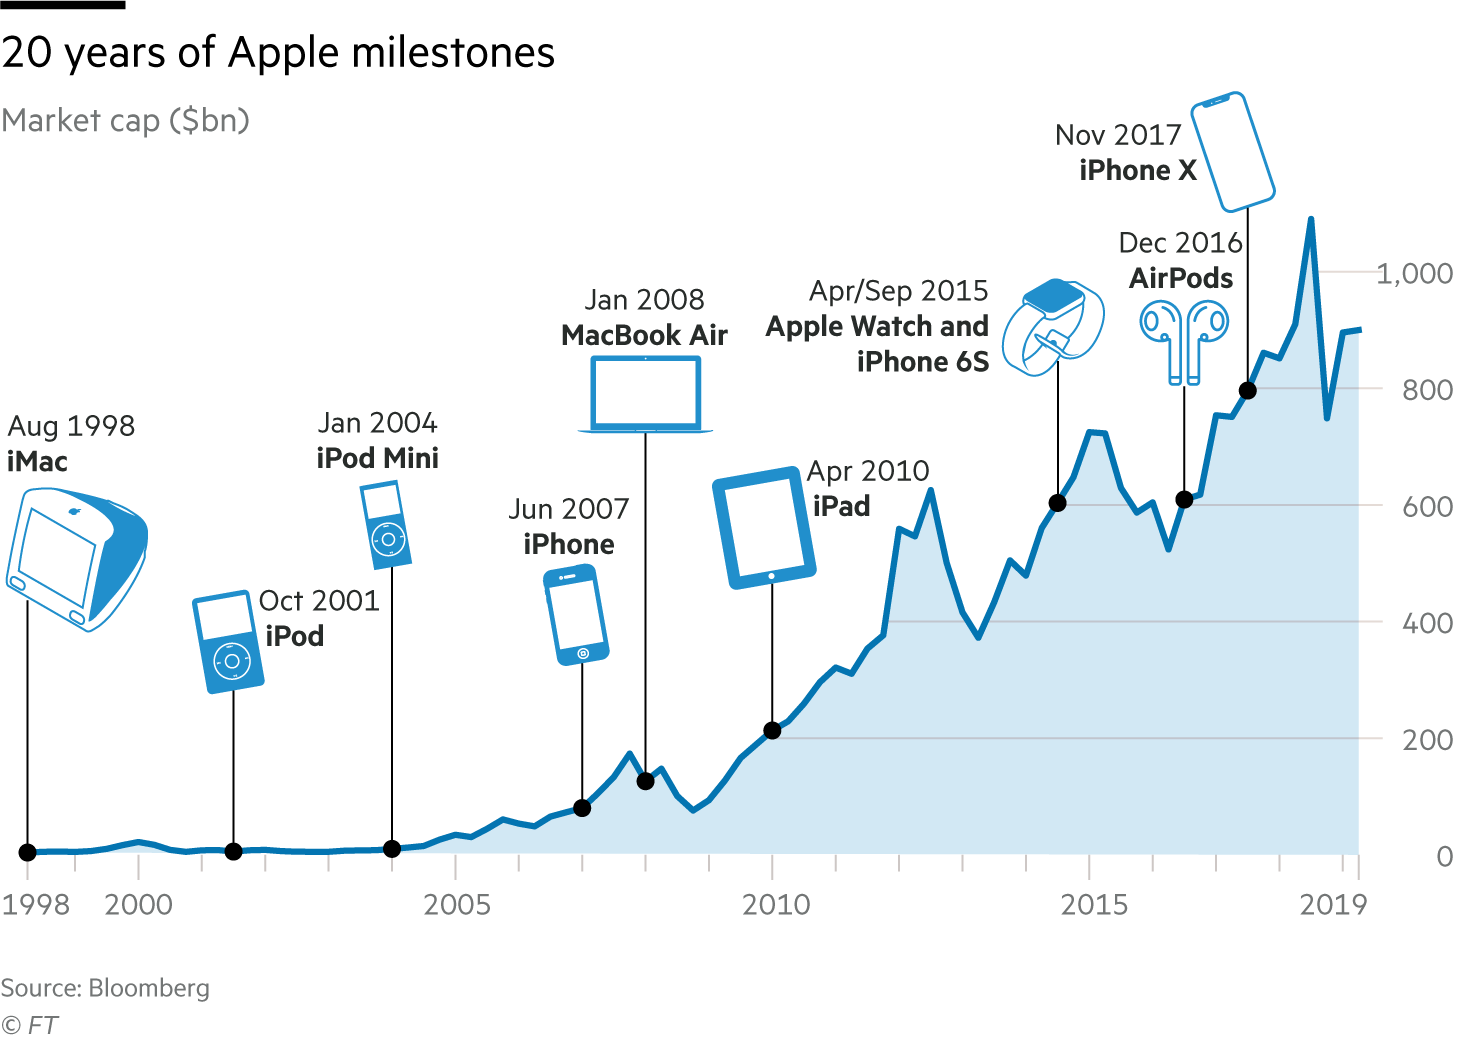 20 years of Apple milestones. Chart showing significant product launches on market cap since 1998